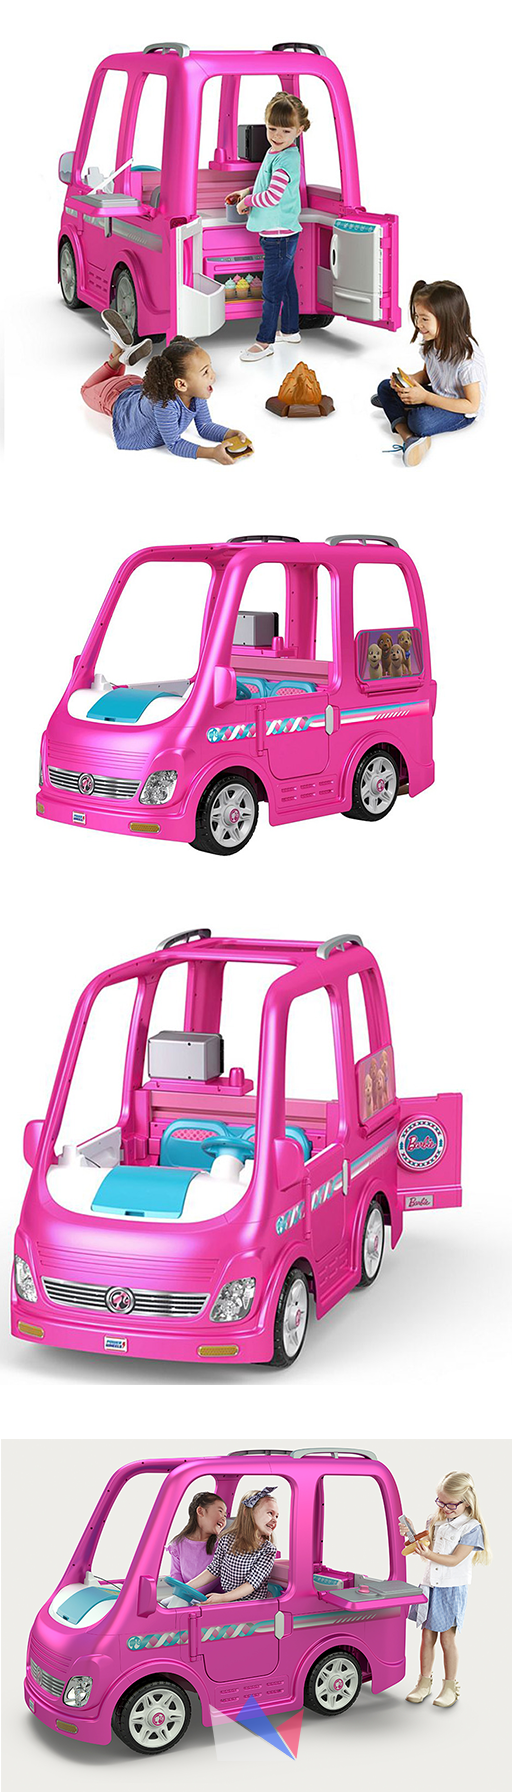 Power Wheels Barbie Dream Camper With Images Barbie Dream Power Wheels Barbie